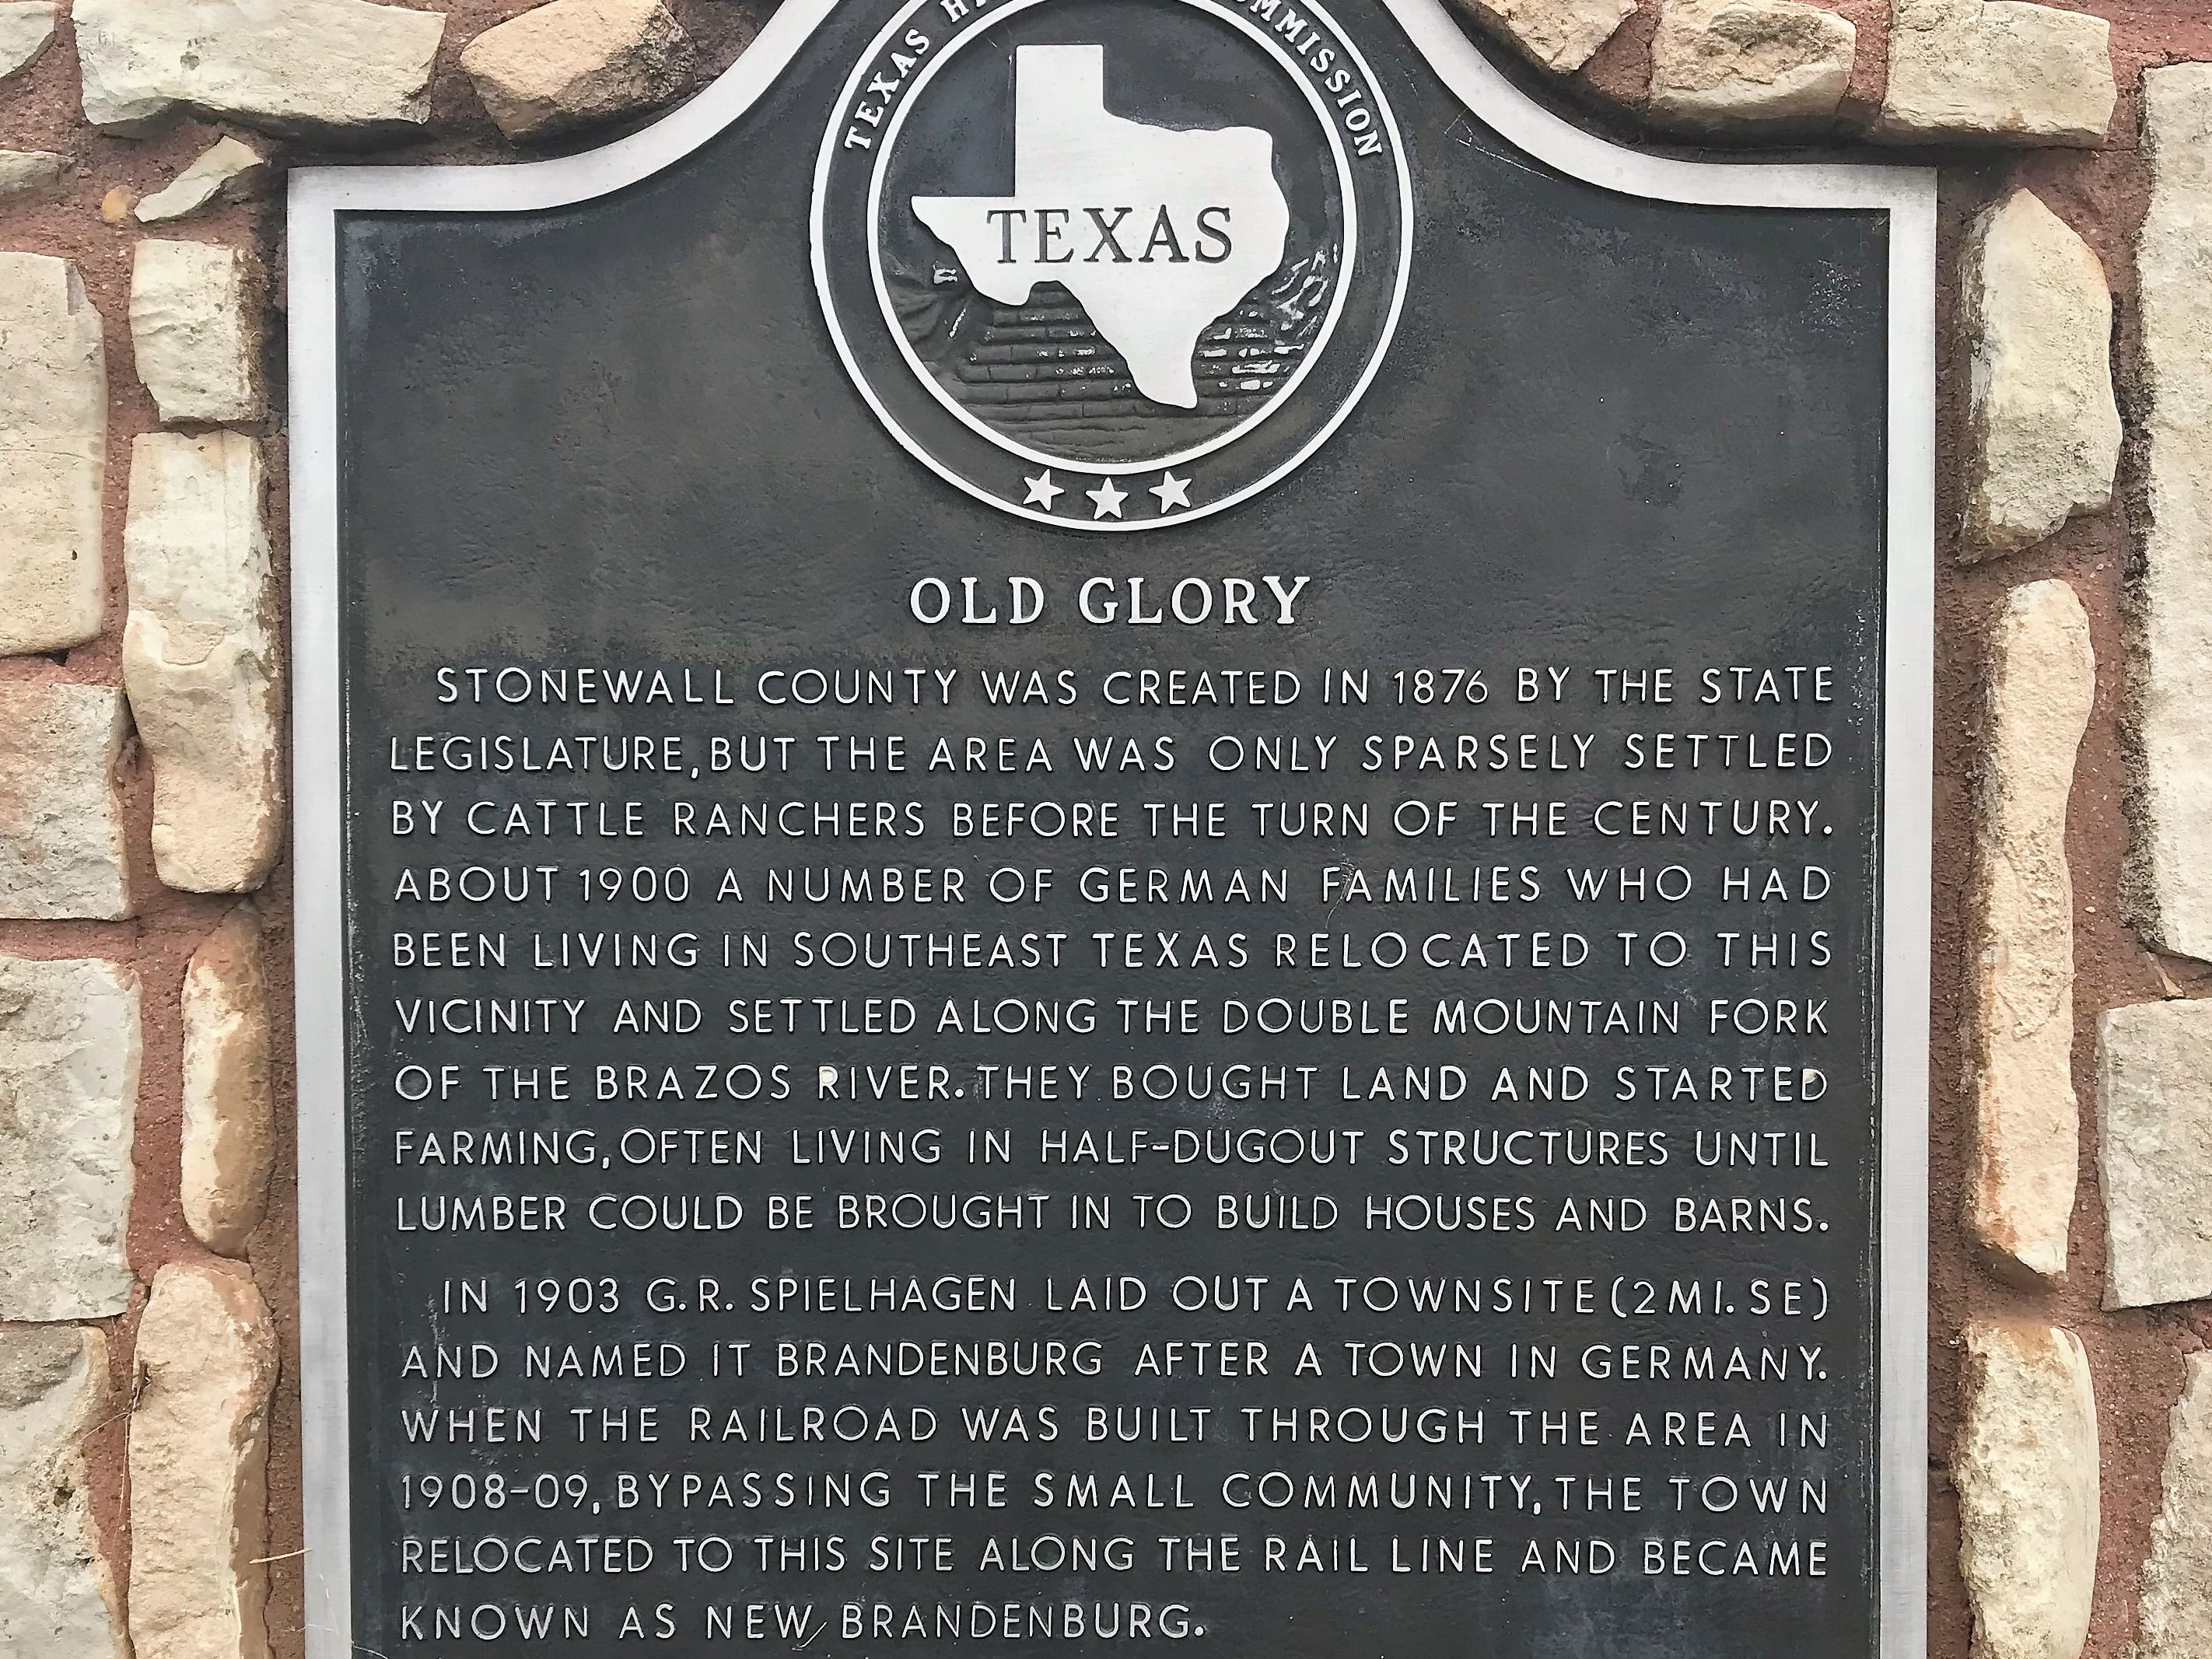 The historical marker in Old Glory.